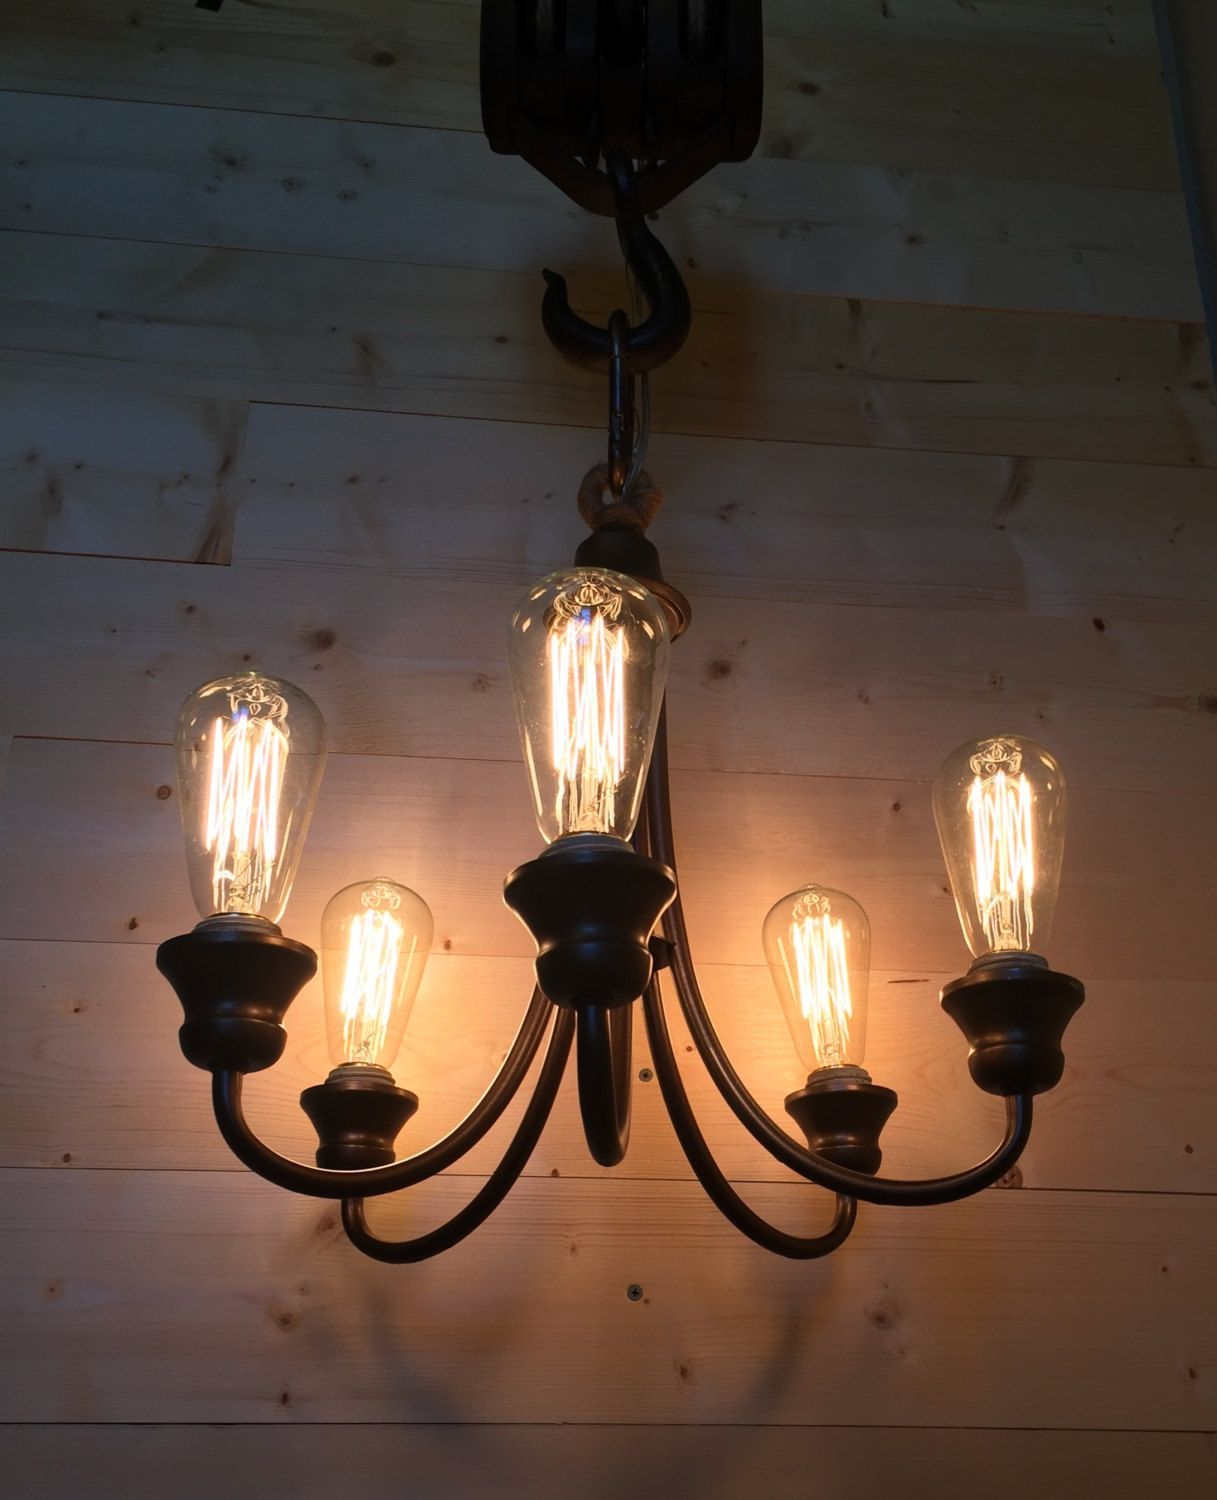 Rustic pulley chandelier rustic lighting pinterest rustic rustic pulley chandelier aloadofball Image collections